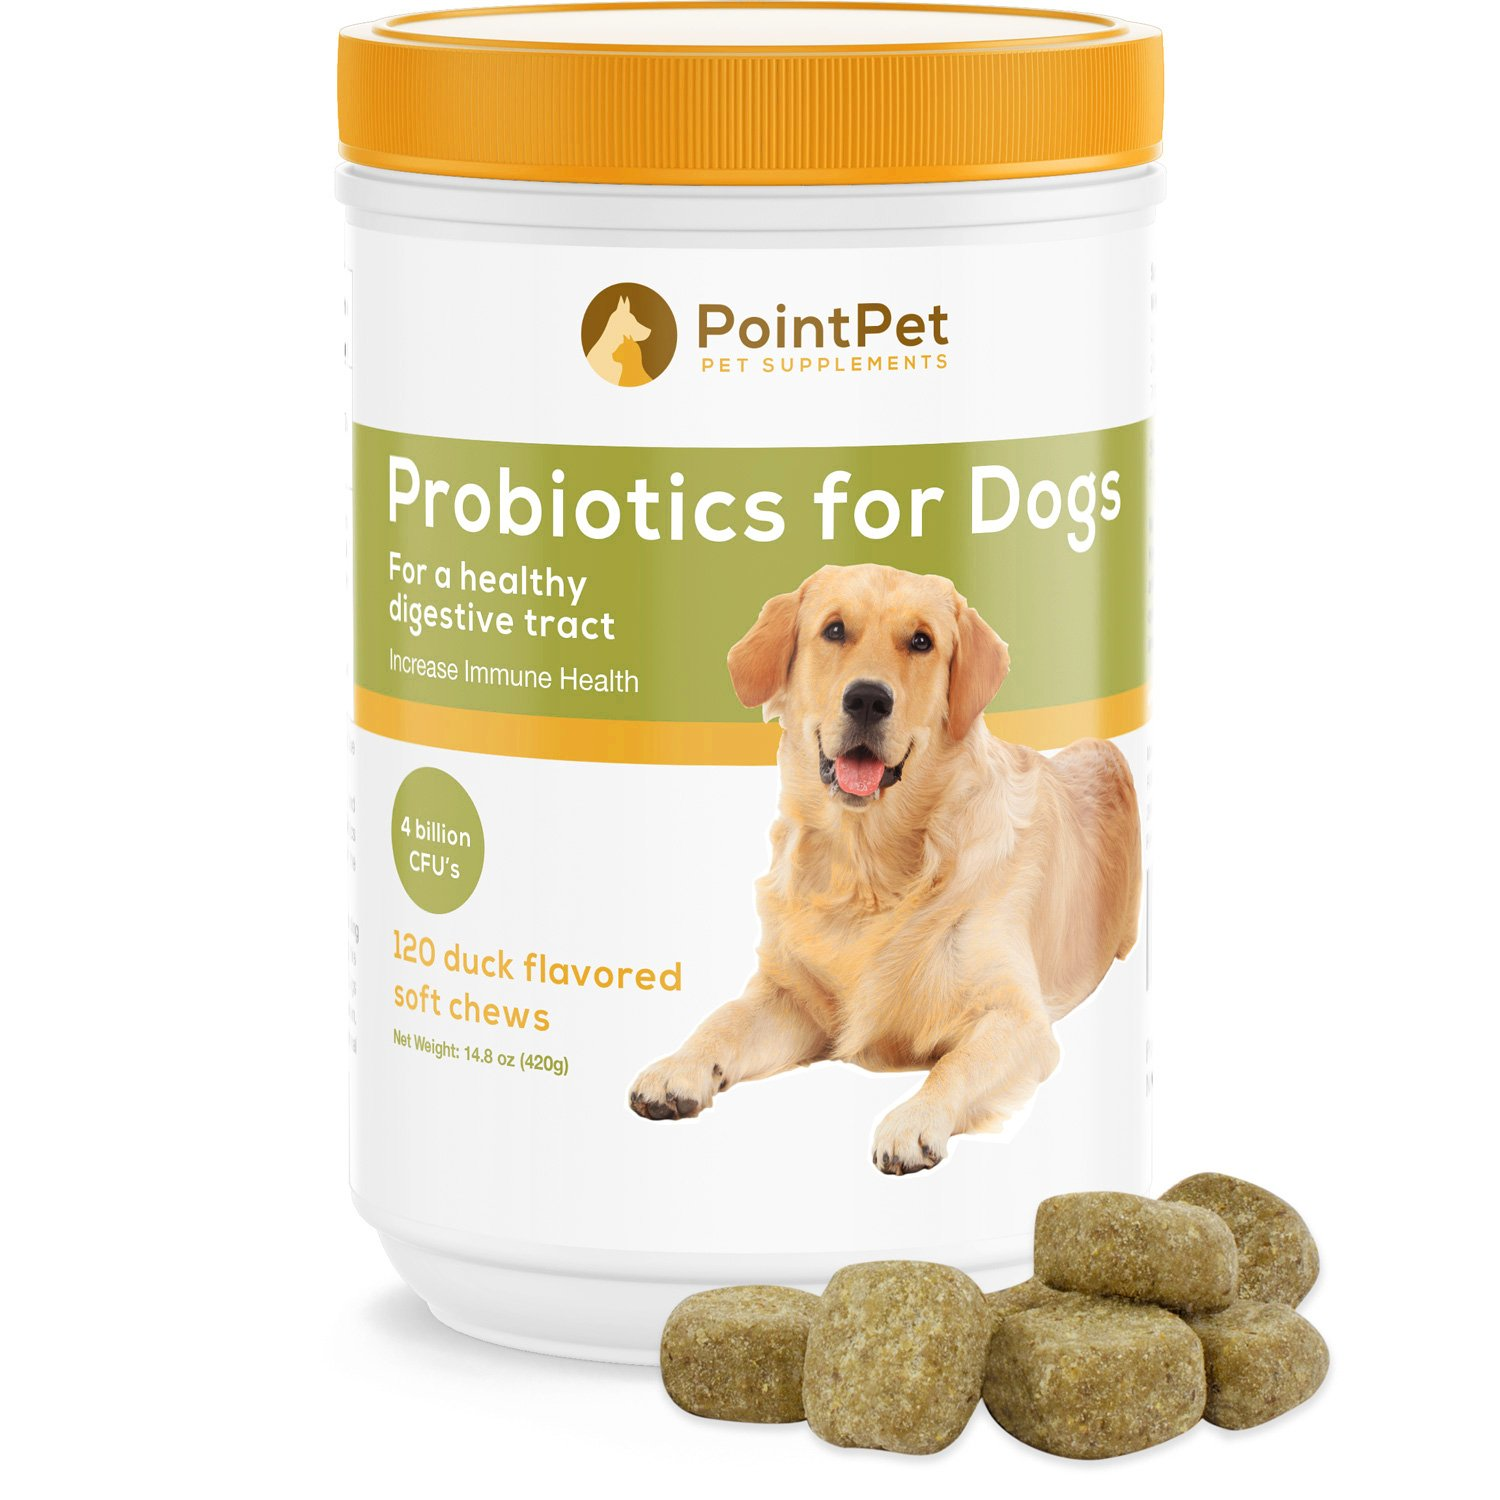 POINTPET Probiotics for Dogs with Digestive Enzymes - Relief from Diarrhea, Dry and Itchy Skin, Gas, Constipation, Allergies - Dog Probiotic Supplement, 120 Soft Chews